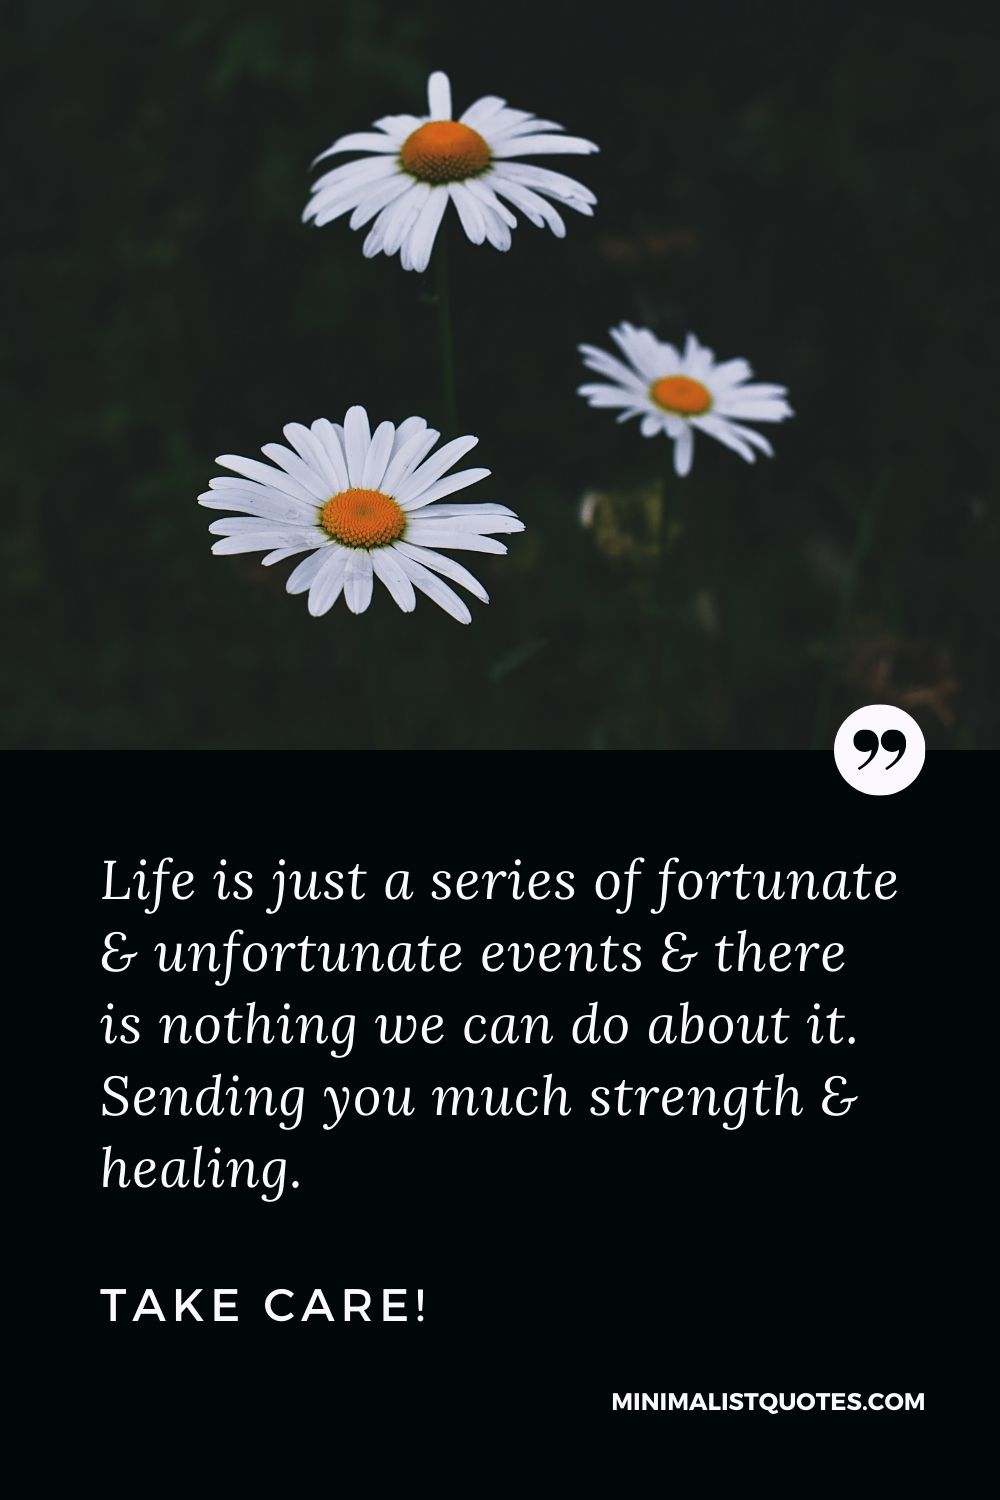 Divorce Quote, Sympathy & Message With Image: Life is just a series of fortunate & unfortunate events & there is nothing we can do about it. Sending you much strength & healing. Take Care!